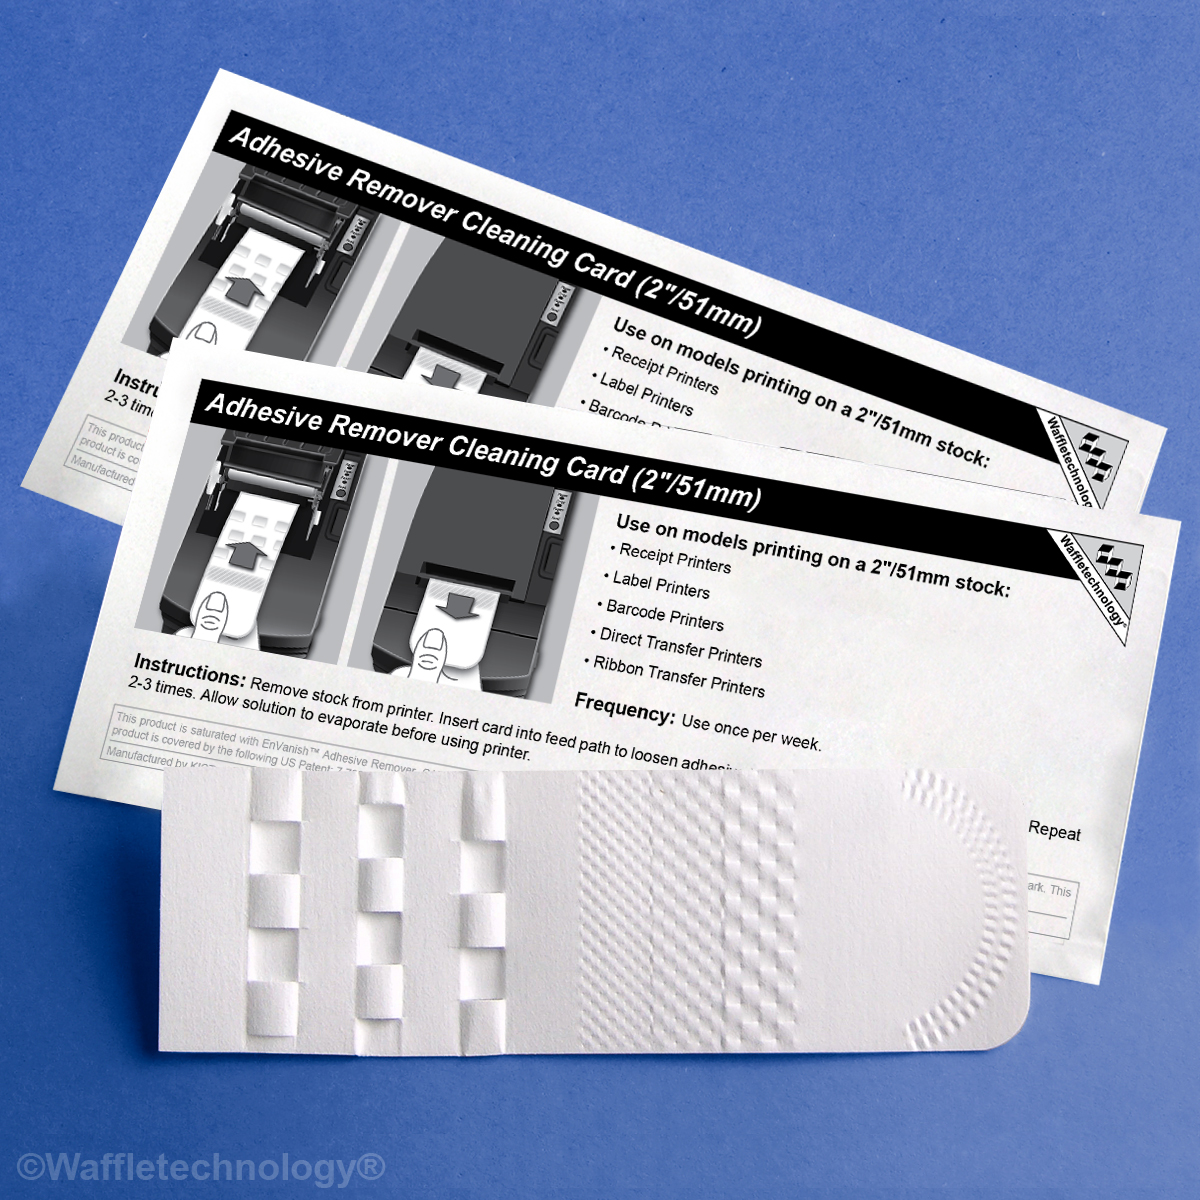 Adhesive Remover Cleaning Card featuring Waffletechnology® (2in/51mm)